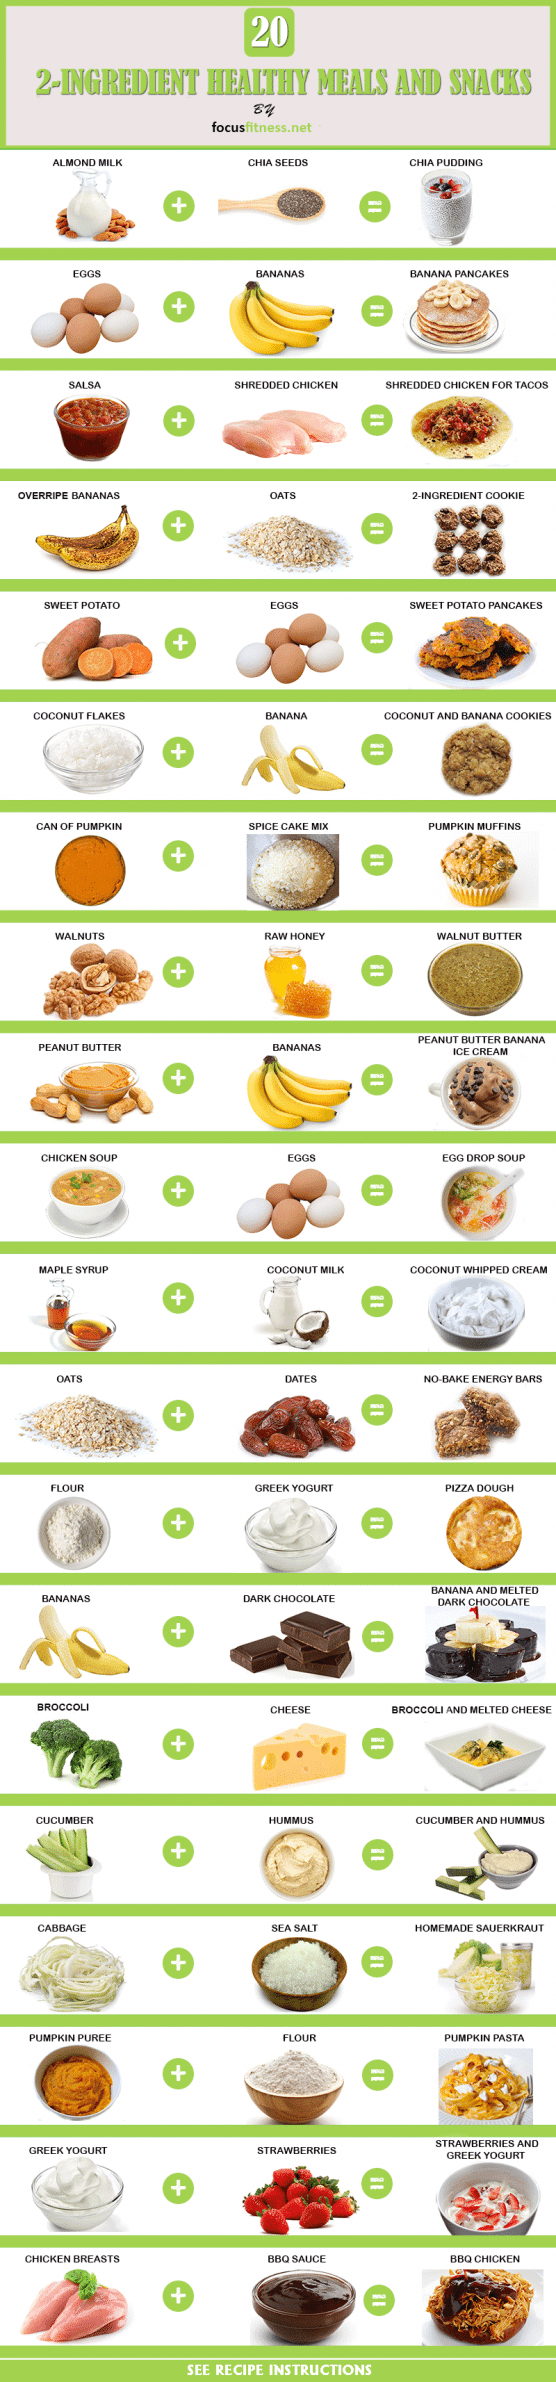 20 Easy Two-Ingredient Recipes For Weight Loss